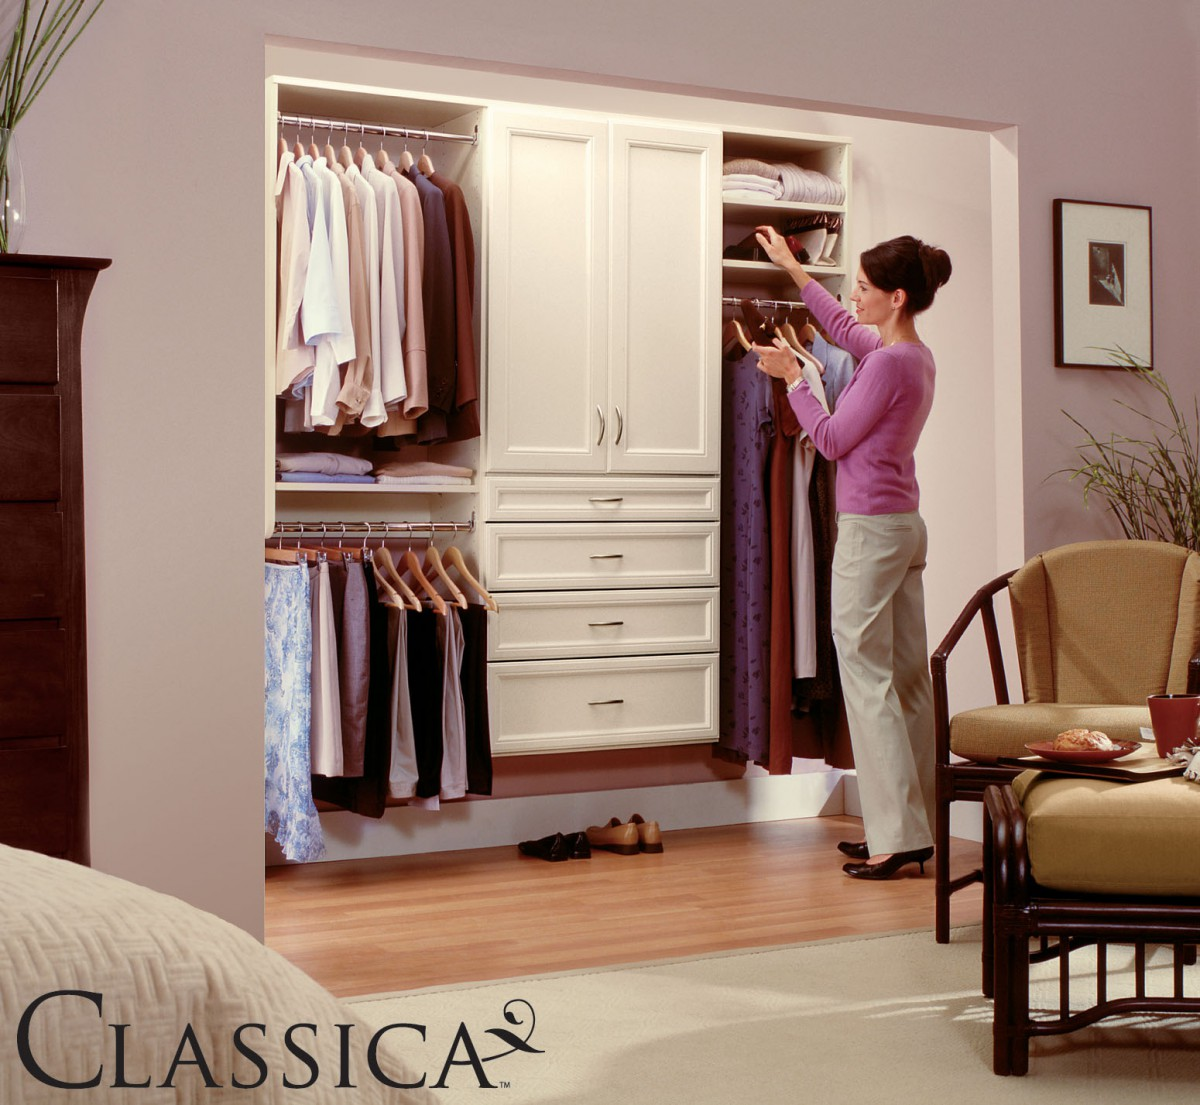 Classica Bisque Model Closet